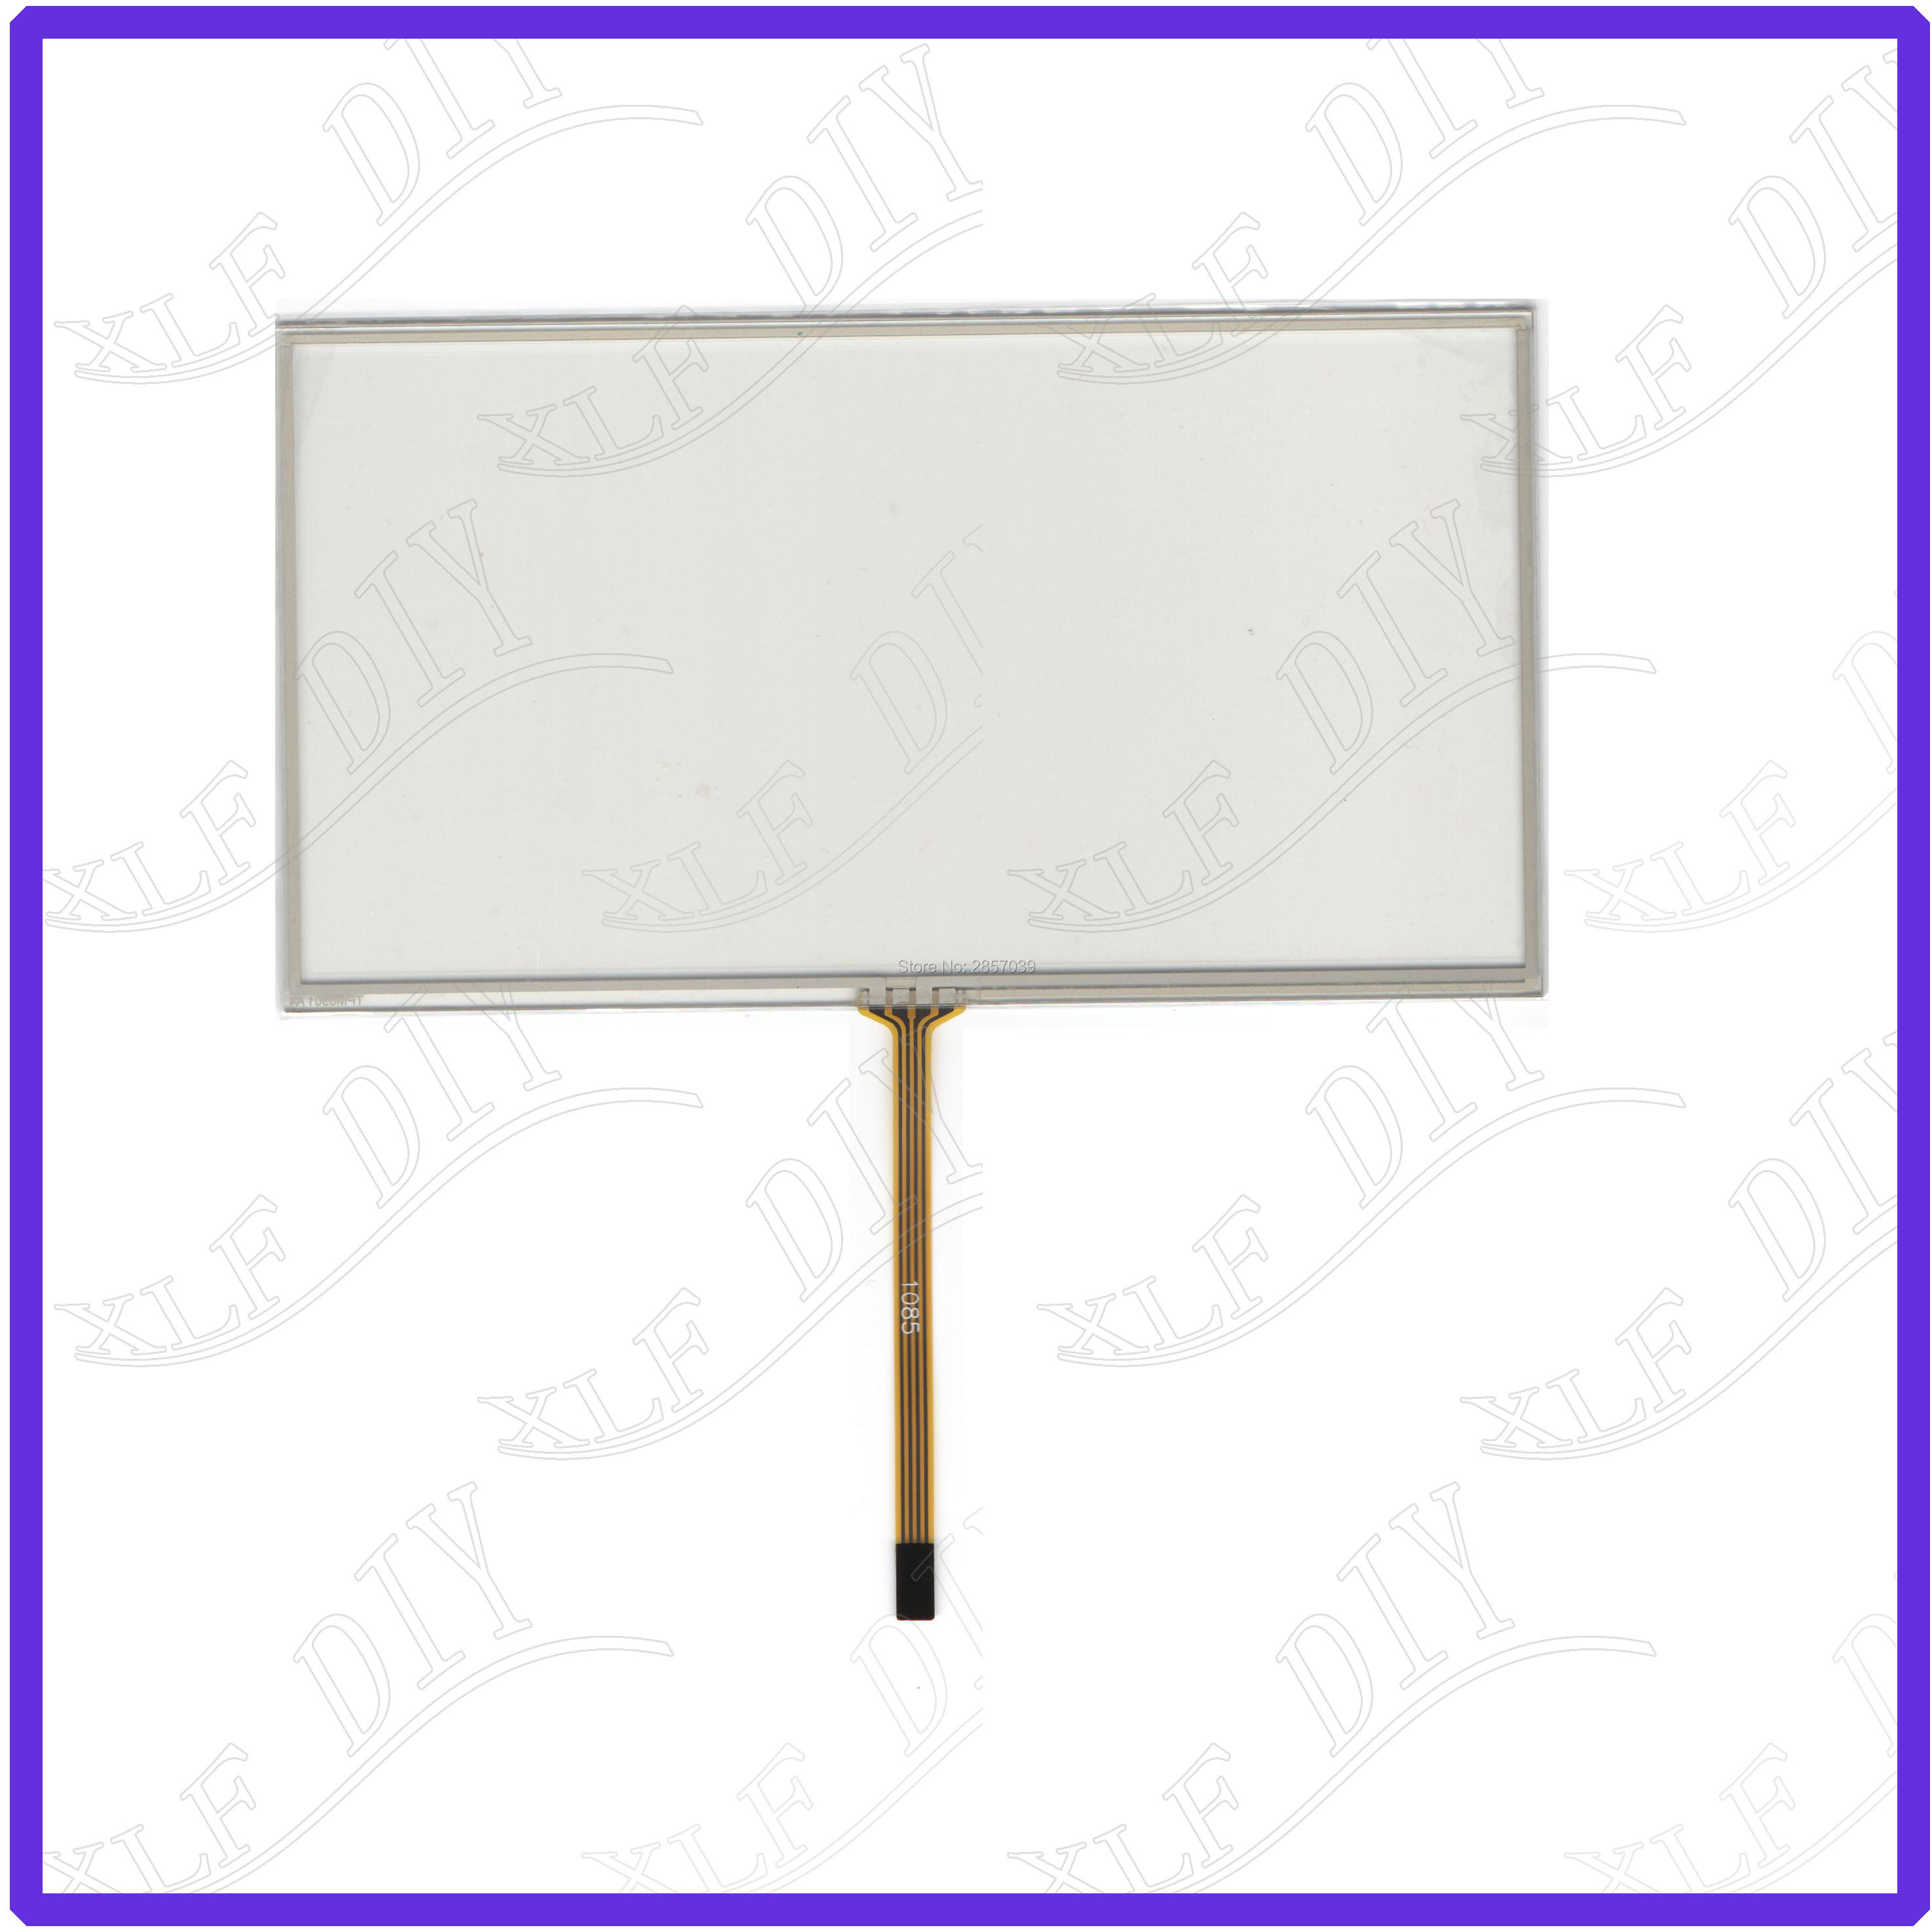 ZhiYuSun For Car Kenwood DDX 6051BT This Is Compatible   7inch 4 Line Touch Screen Panel  Sensor Glass 2831-1 For GPS CAR